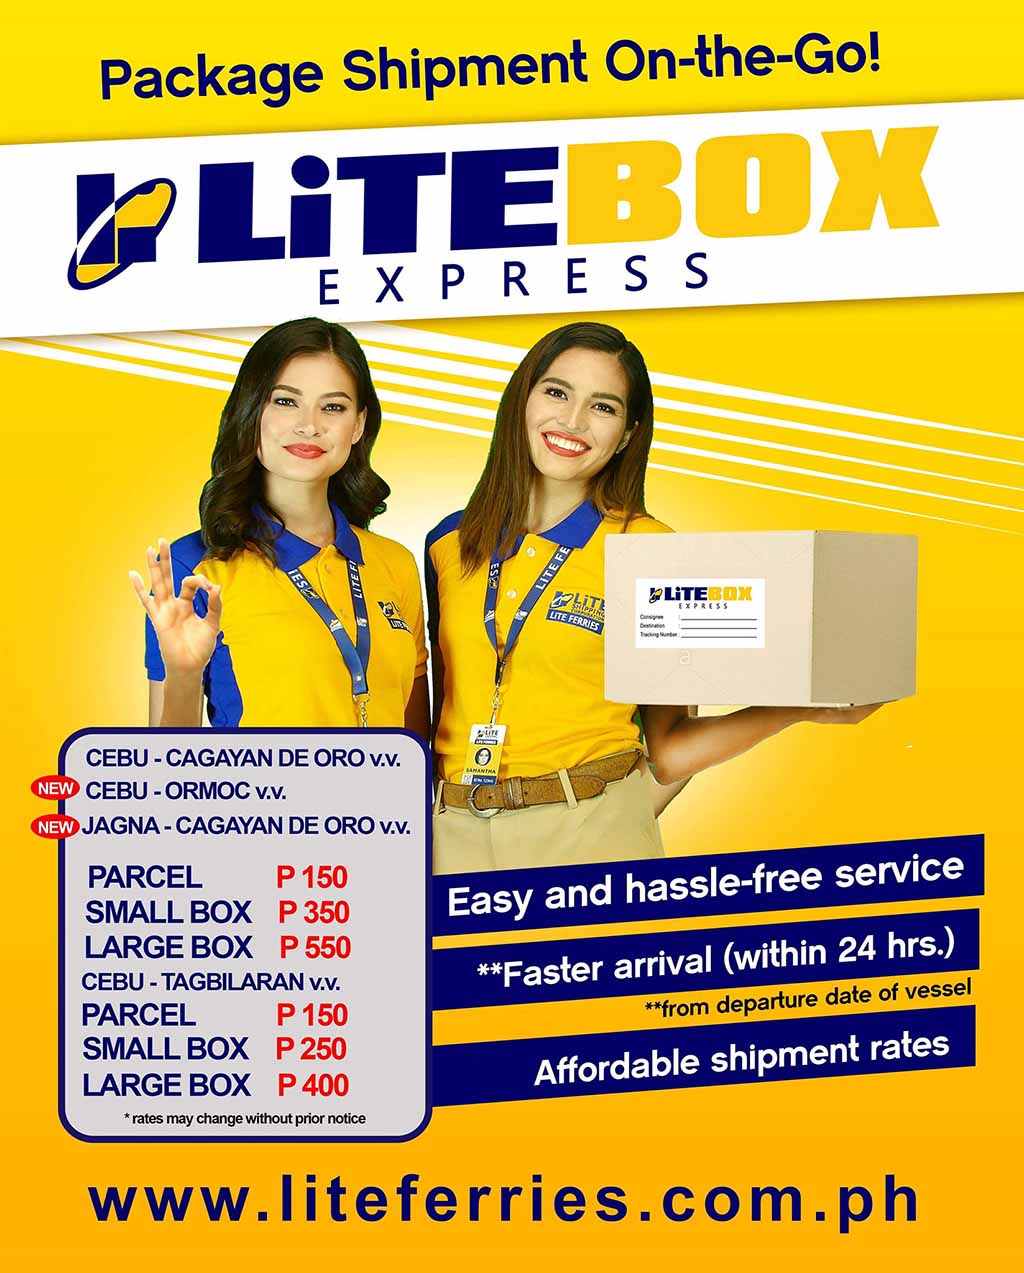 LiTE Box Express Routes and Pricing (Source: Facebook)